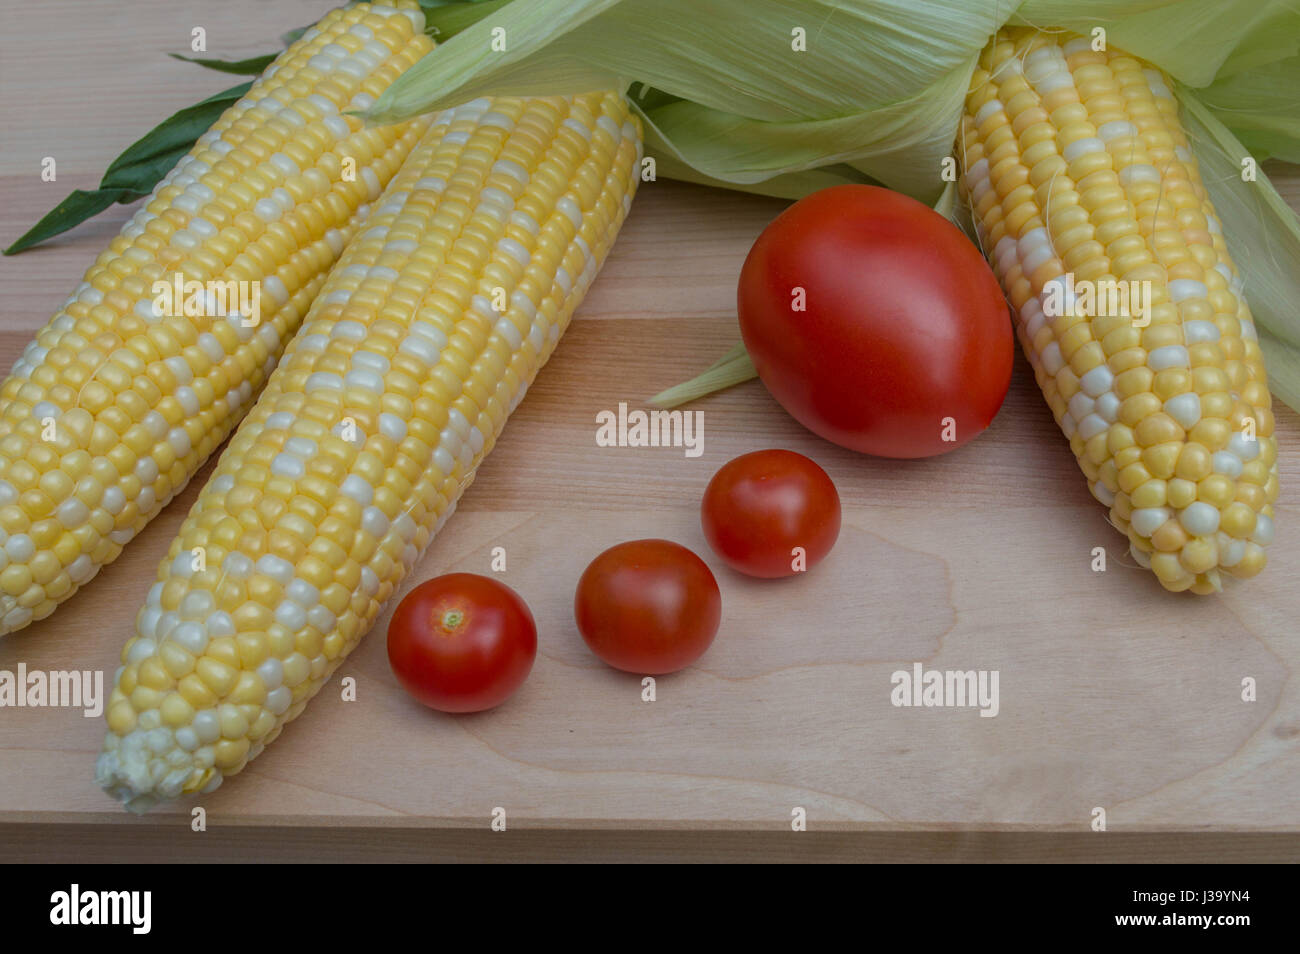 Four fresh tomatoes between three ears of corn on a maple cutting board. - Stock Image